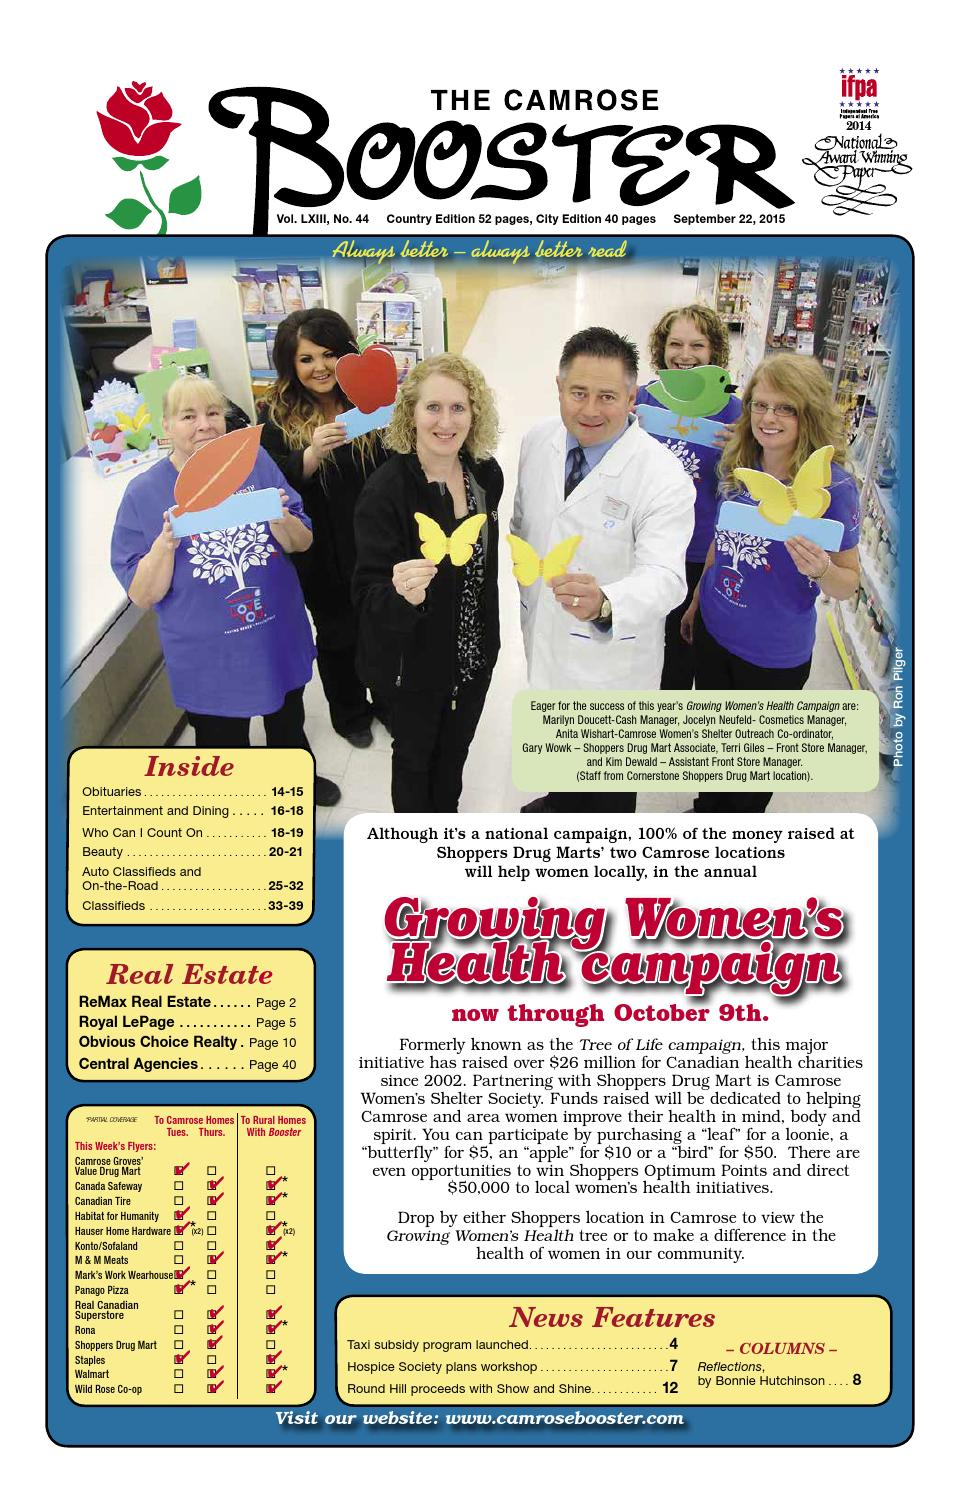 September 22 2015 Camrose Booster By The Camrose Booster Issuu